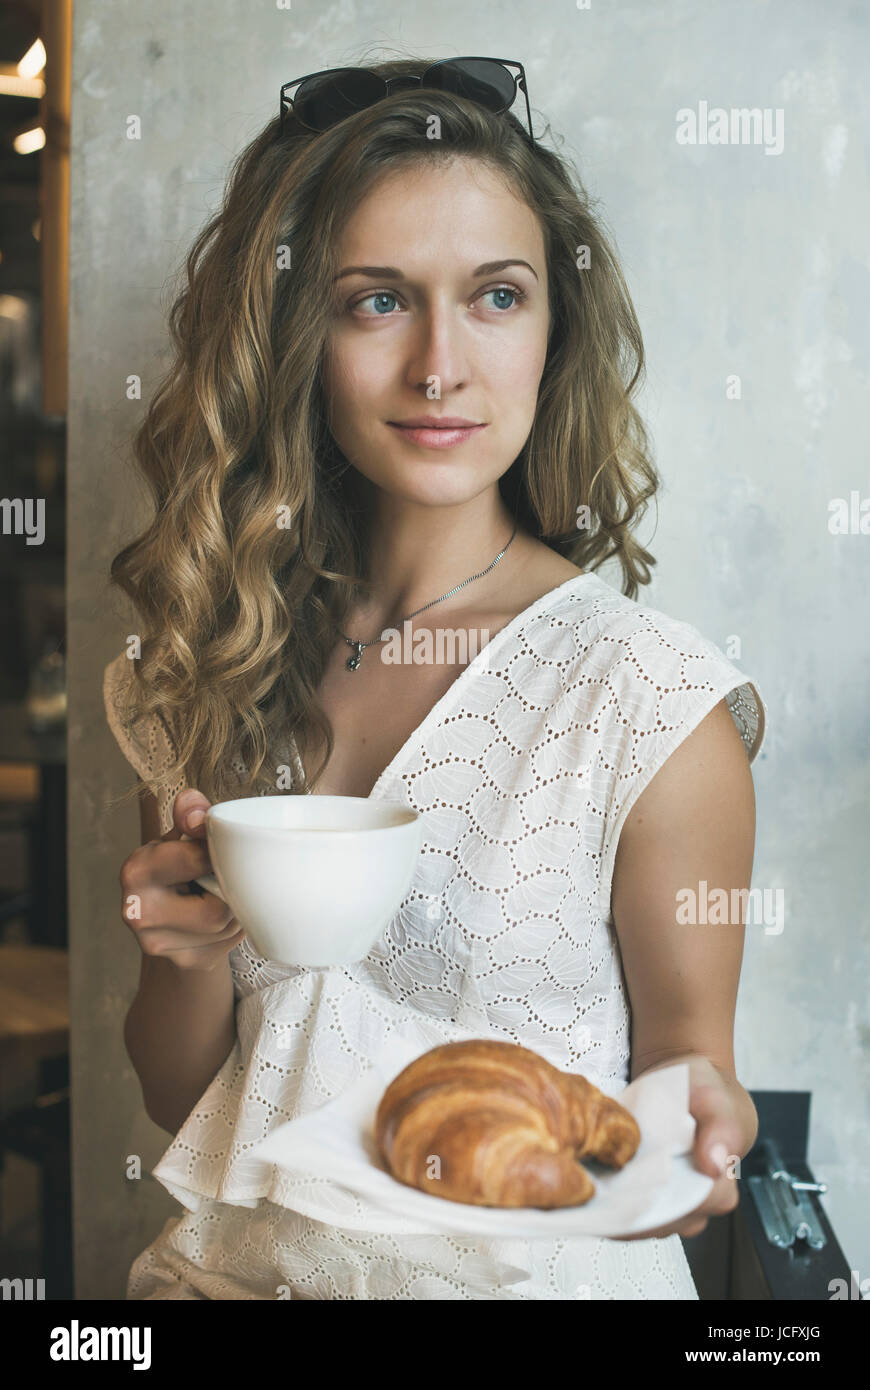 Blond curly haired young woman wearing white dress sitting in cafe with cup of cappuccino and croissant - Stock Image